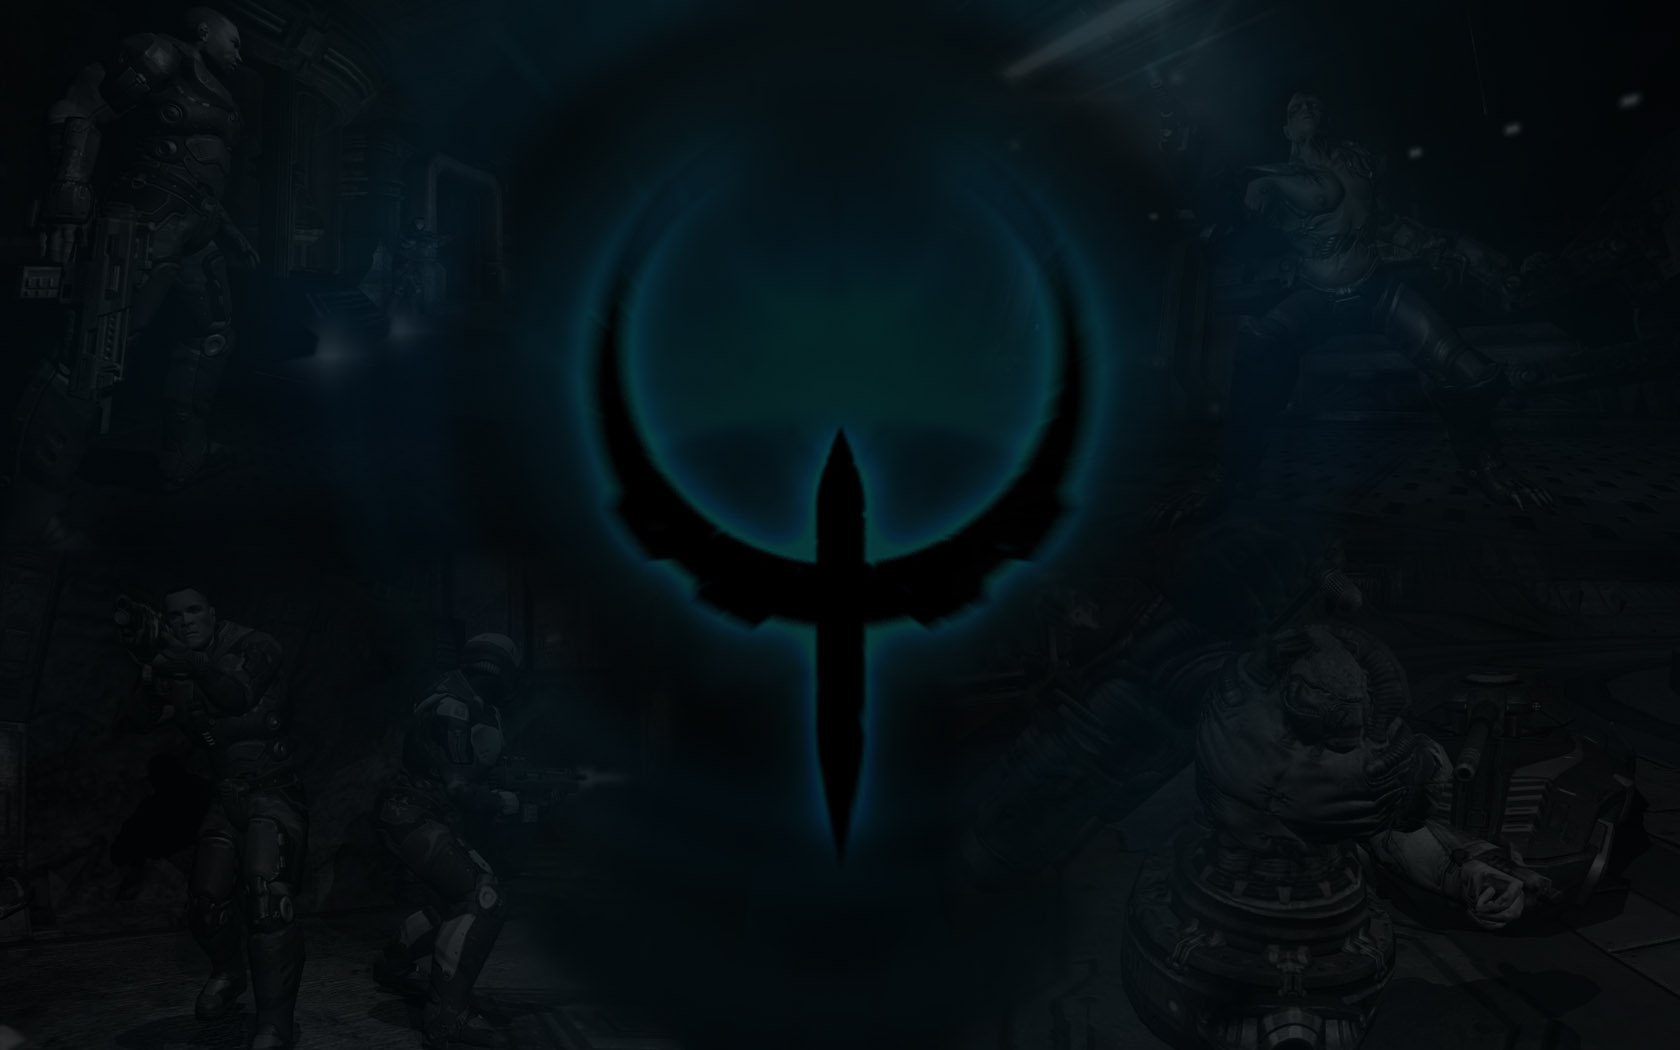 Quake-logo-Wallpaper-